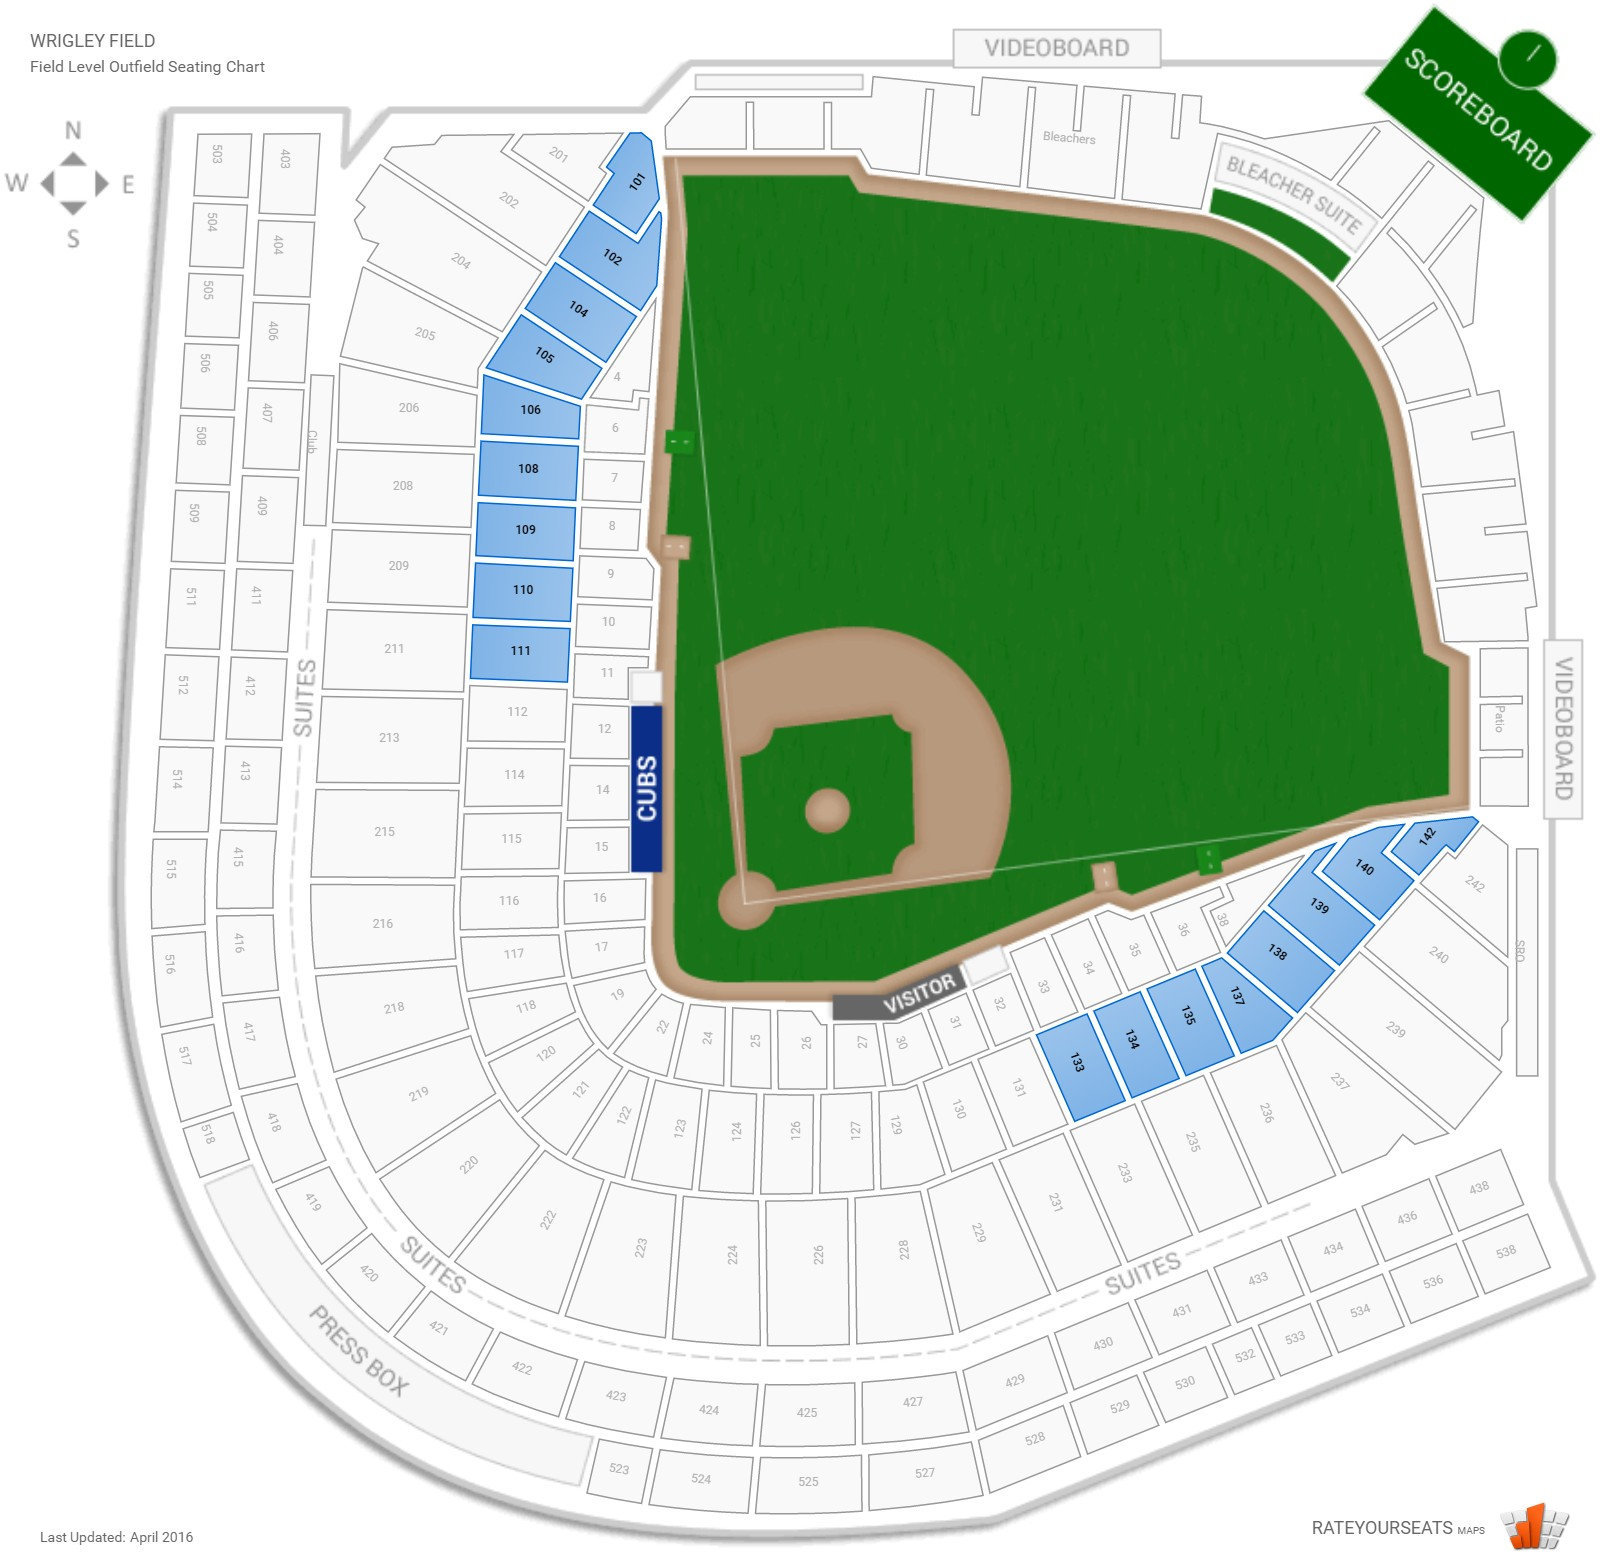 Wrigley Field Field Box Outfield seating chart